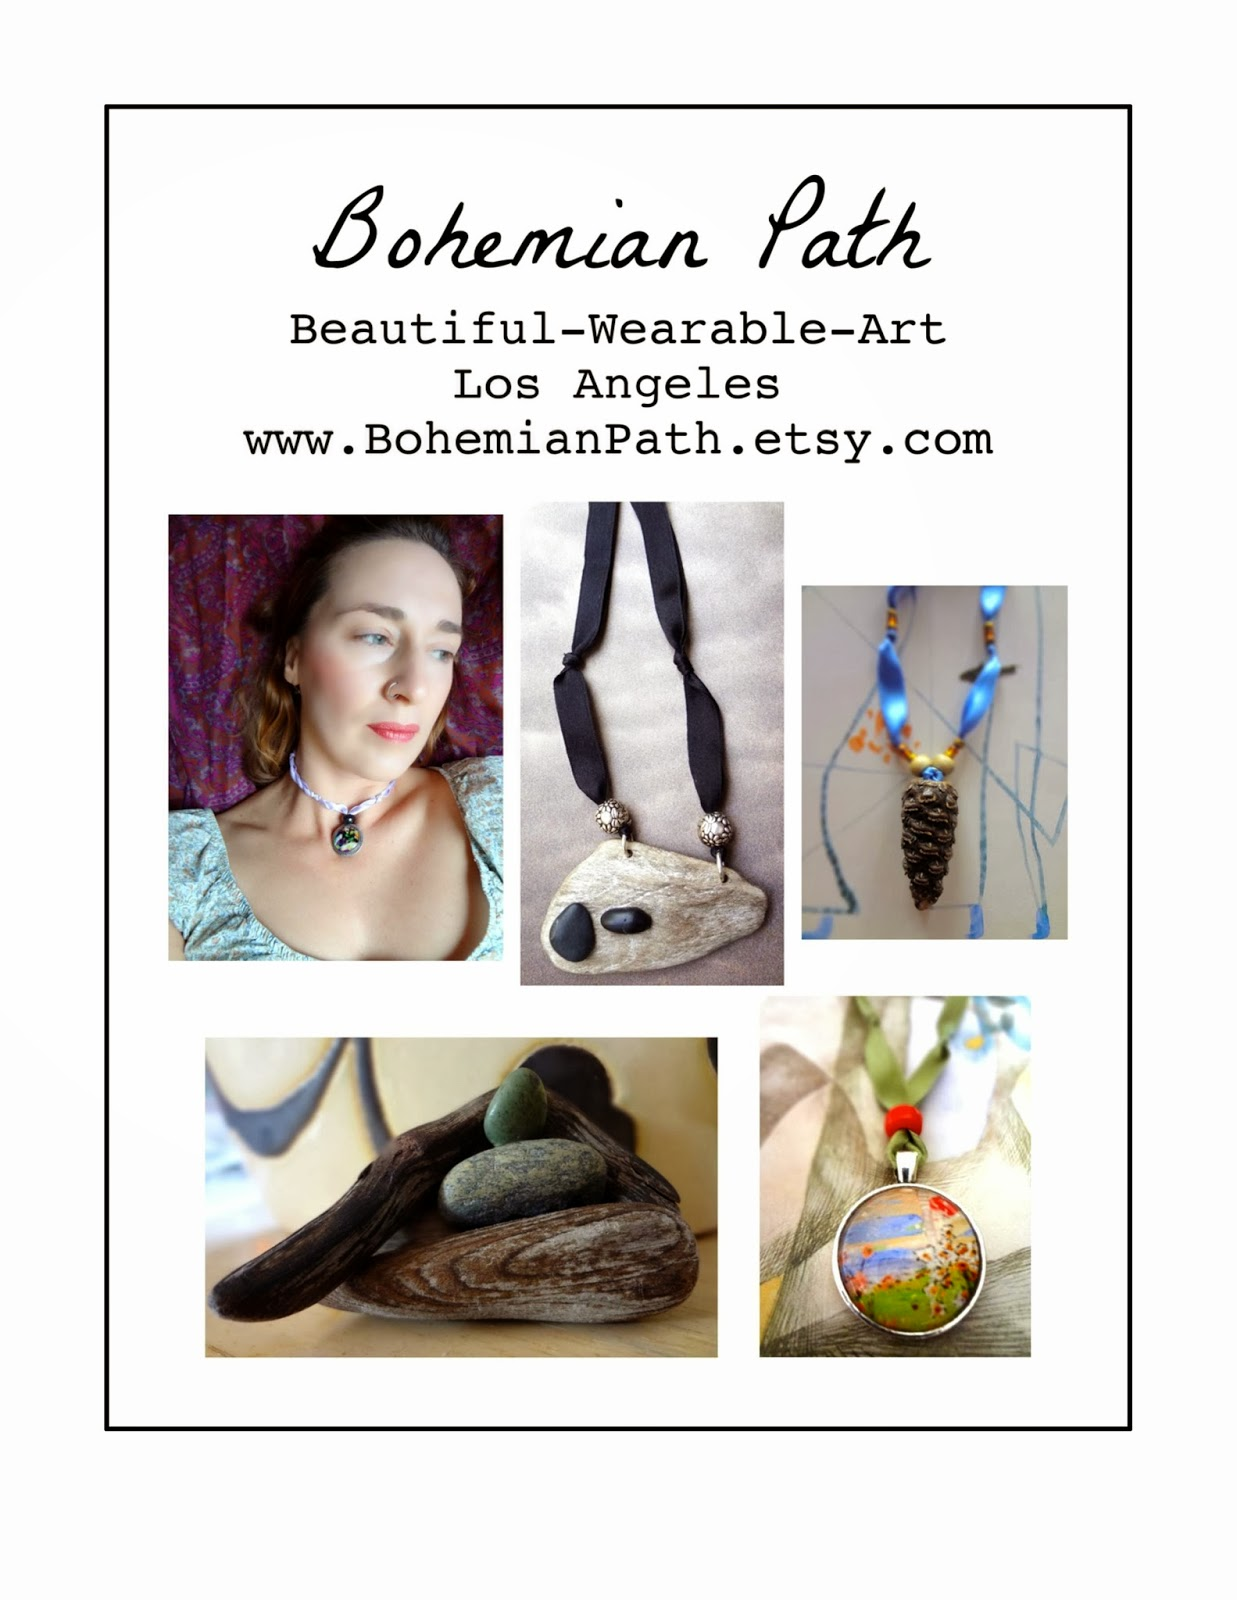 Bohemian Path Tarot: The Perils Of Being A Songwriter: On The Bohemian Path